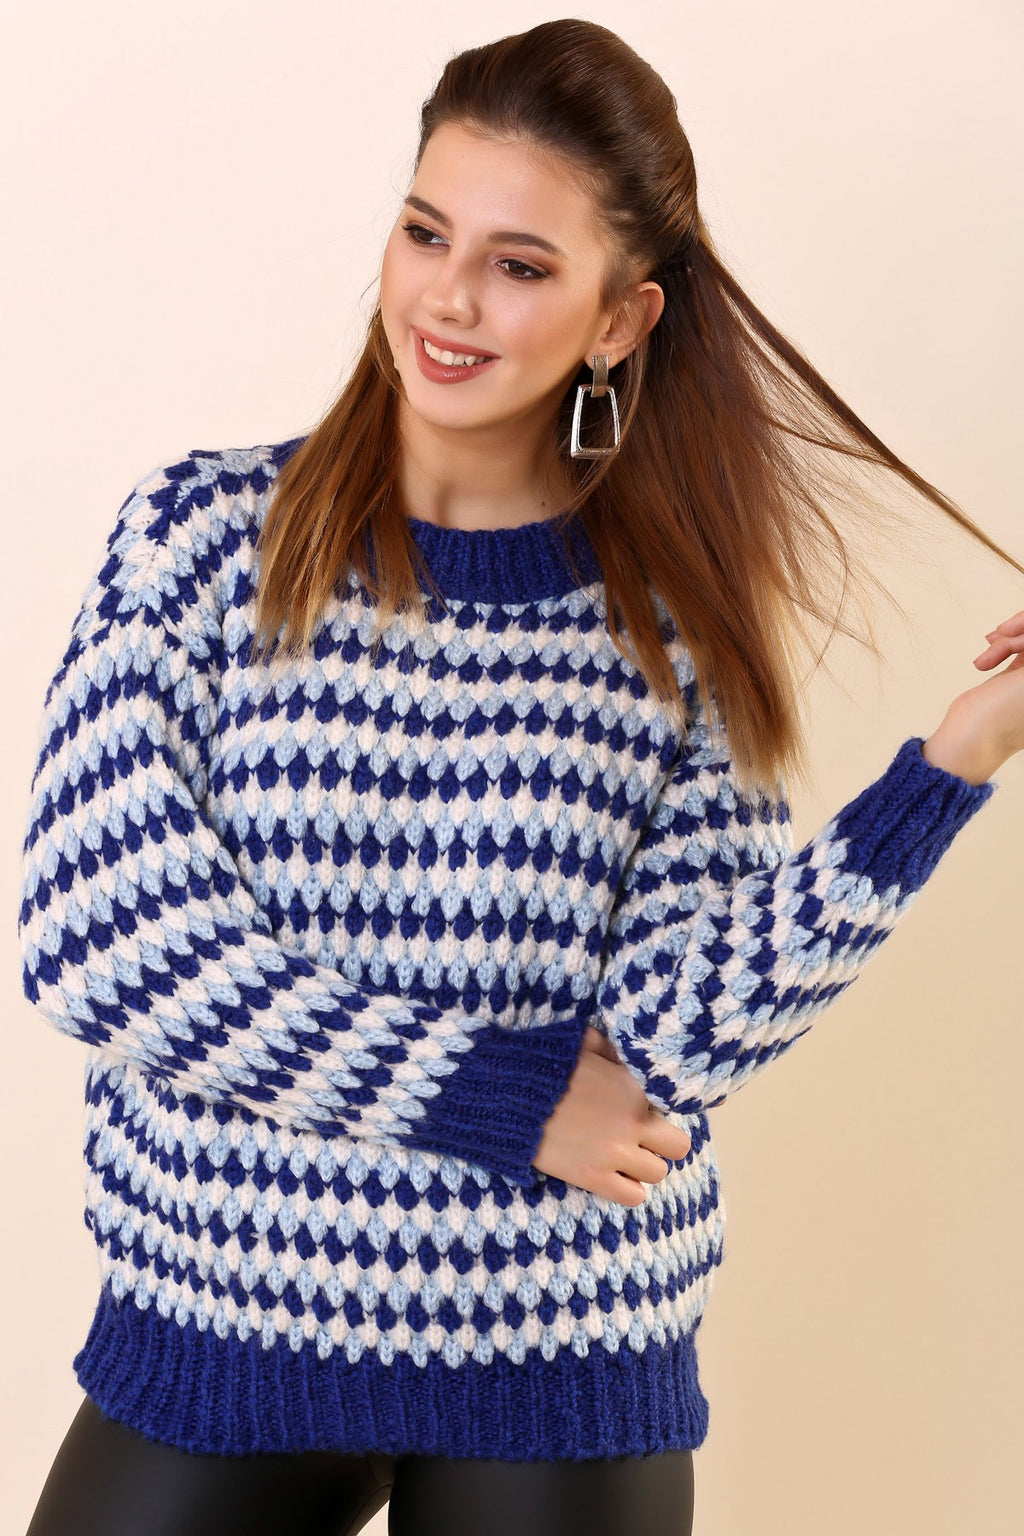 Crew Neck Patterned Tricot Pullover - THE UNIQUE FIT